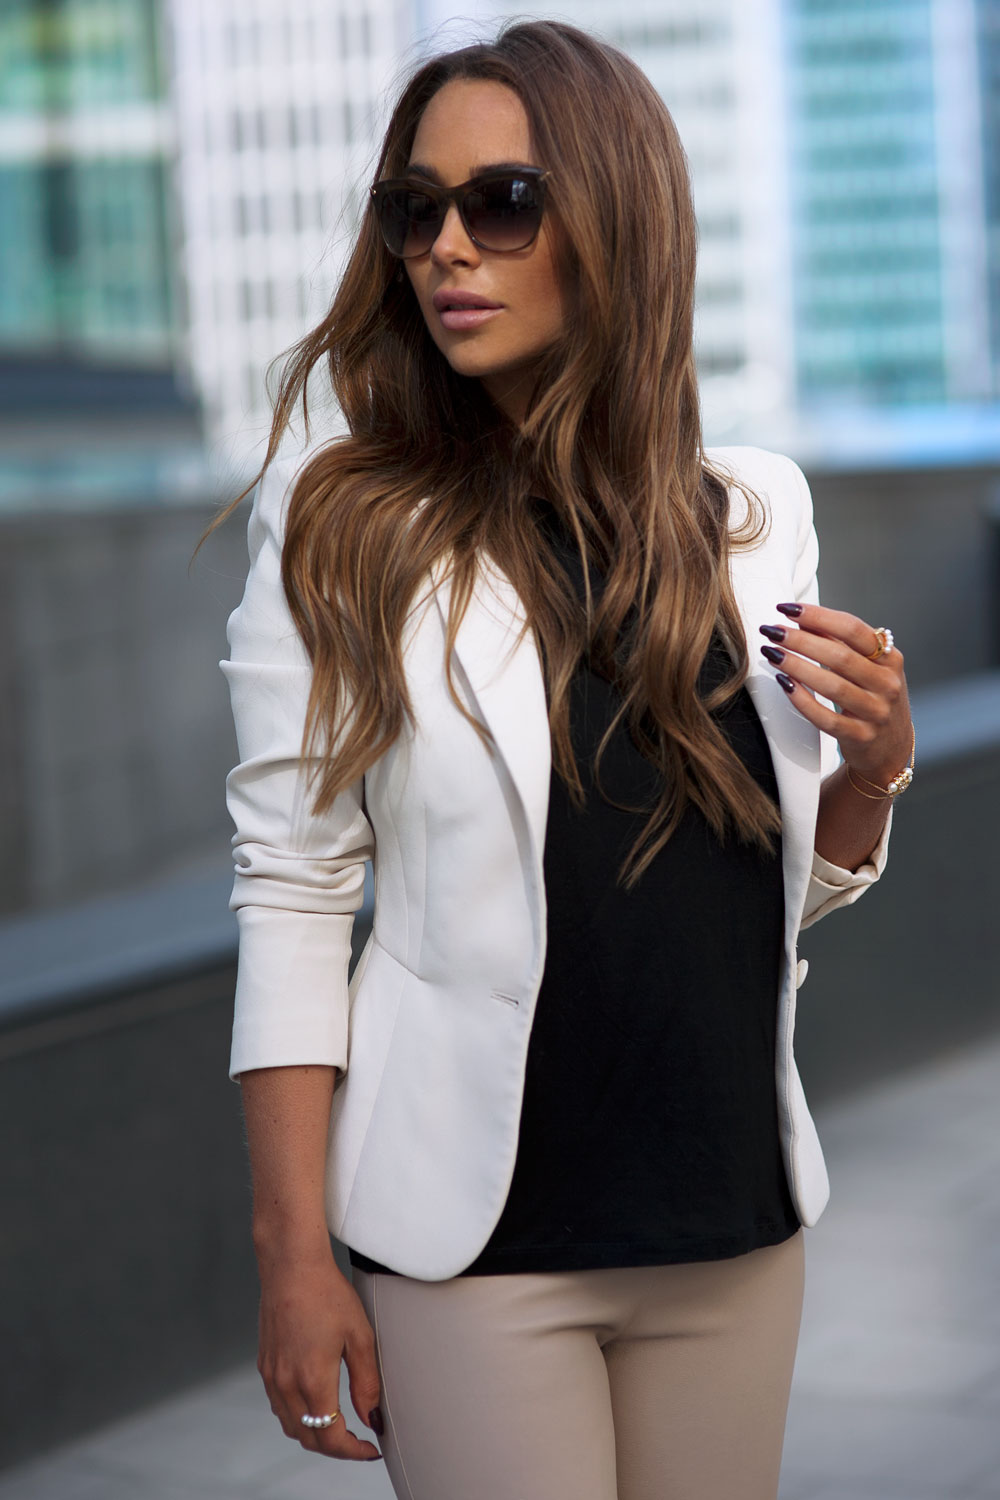 Street Style, April 2015: Johanna Olsson is wearing a white Reiss blazer with a black Dagmar top and beige Patrizia Pepe leggings